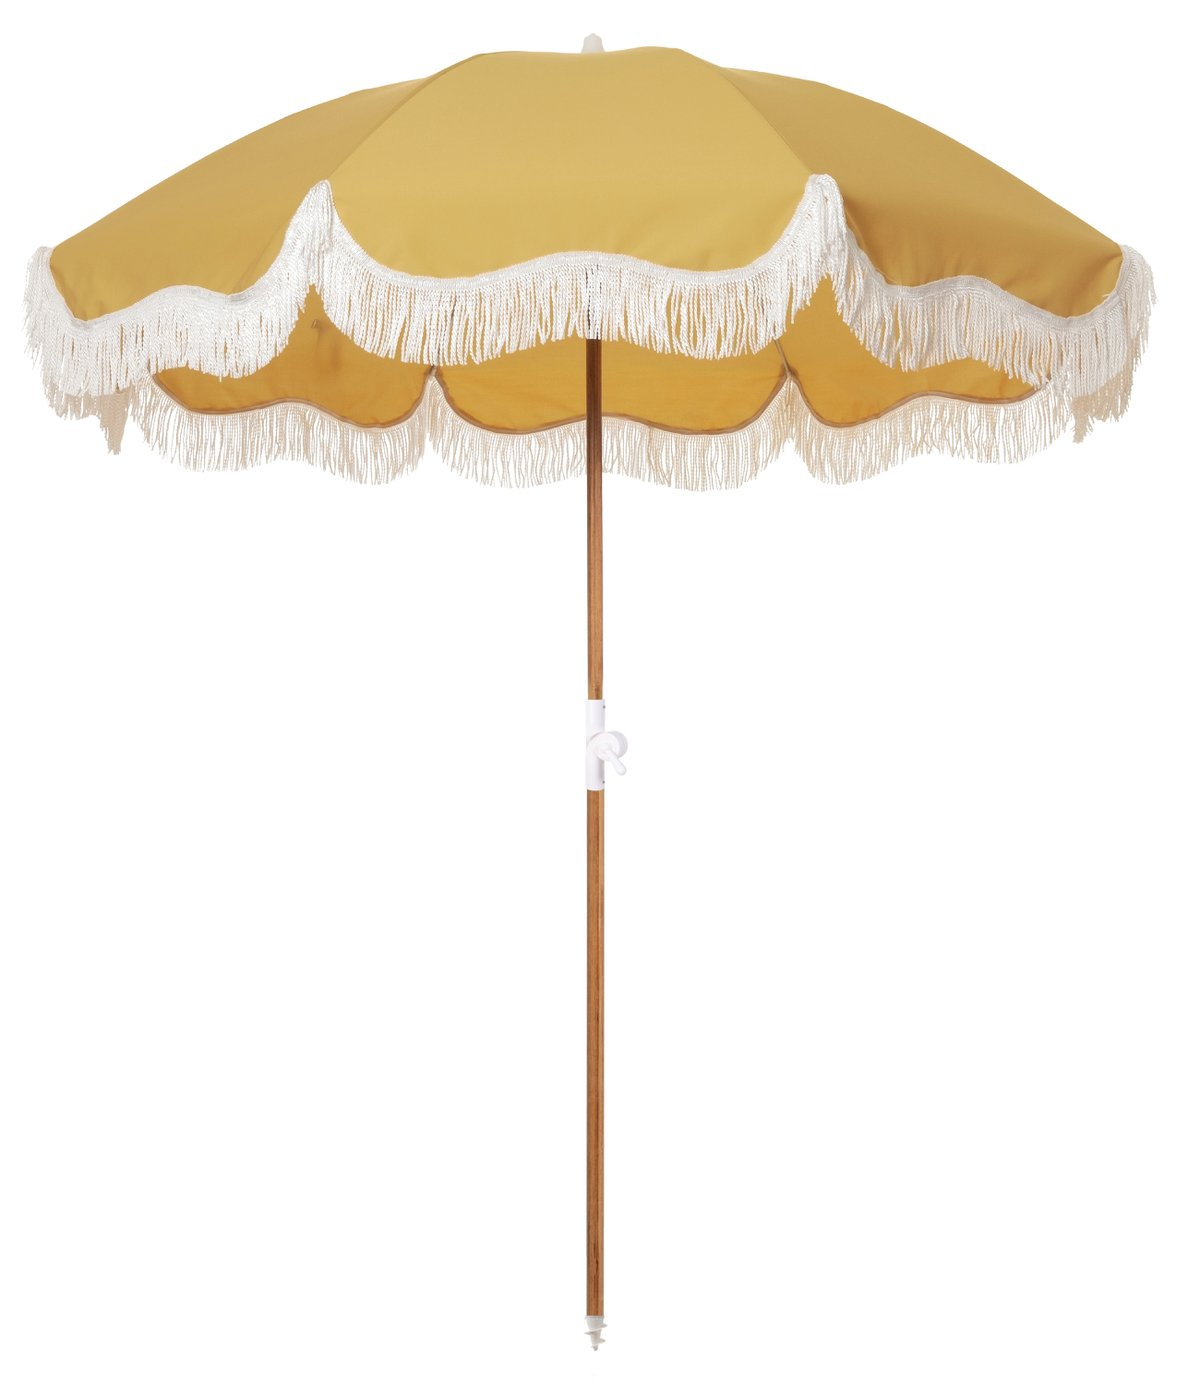 The Holiday Beach Umbrella - Vintage Gold